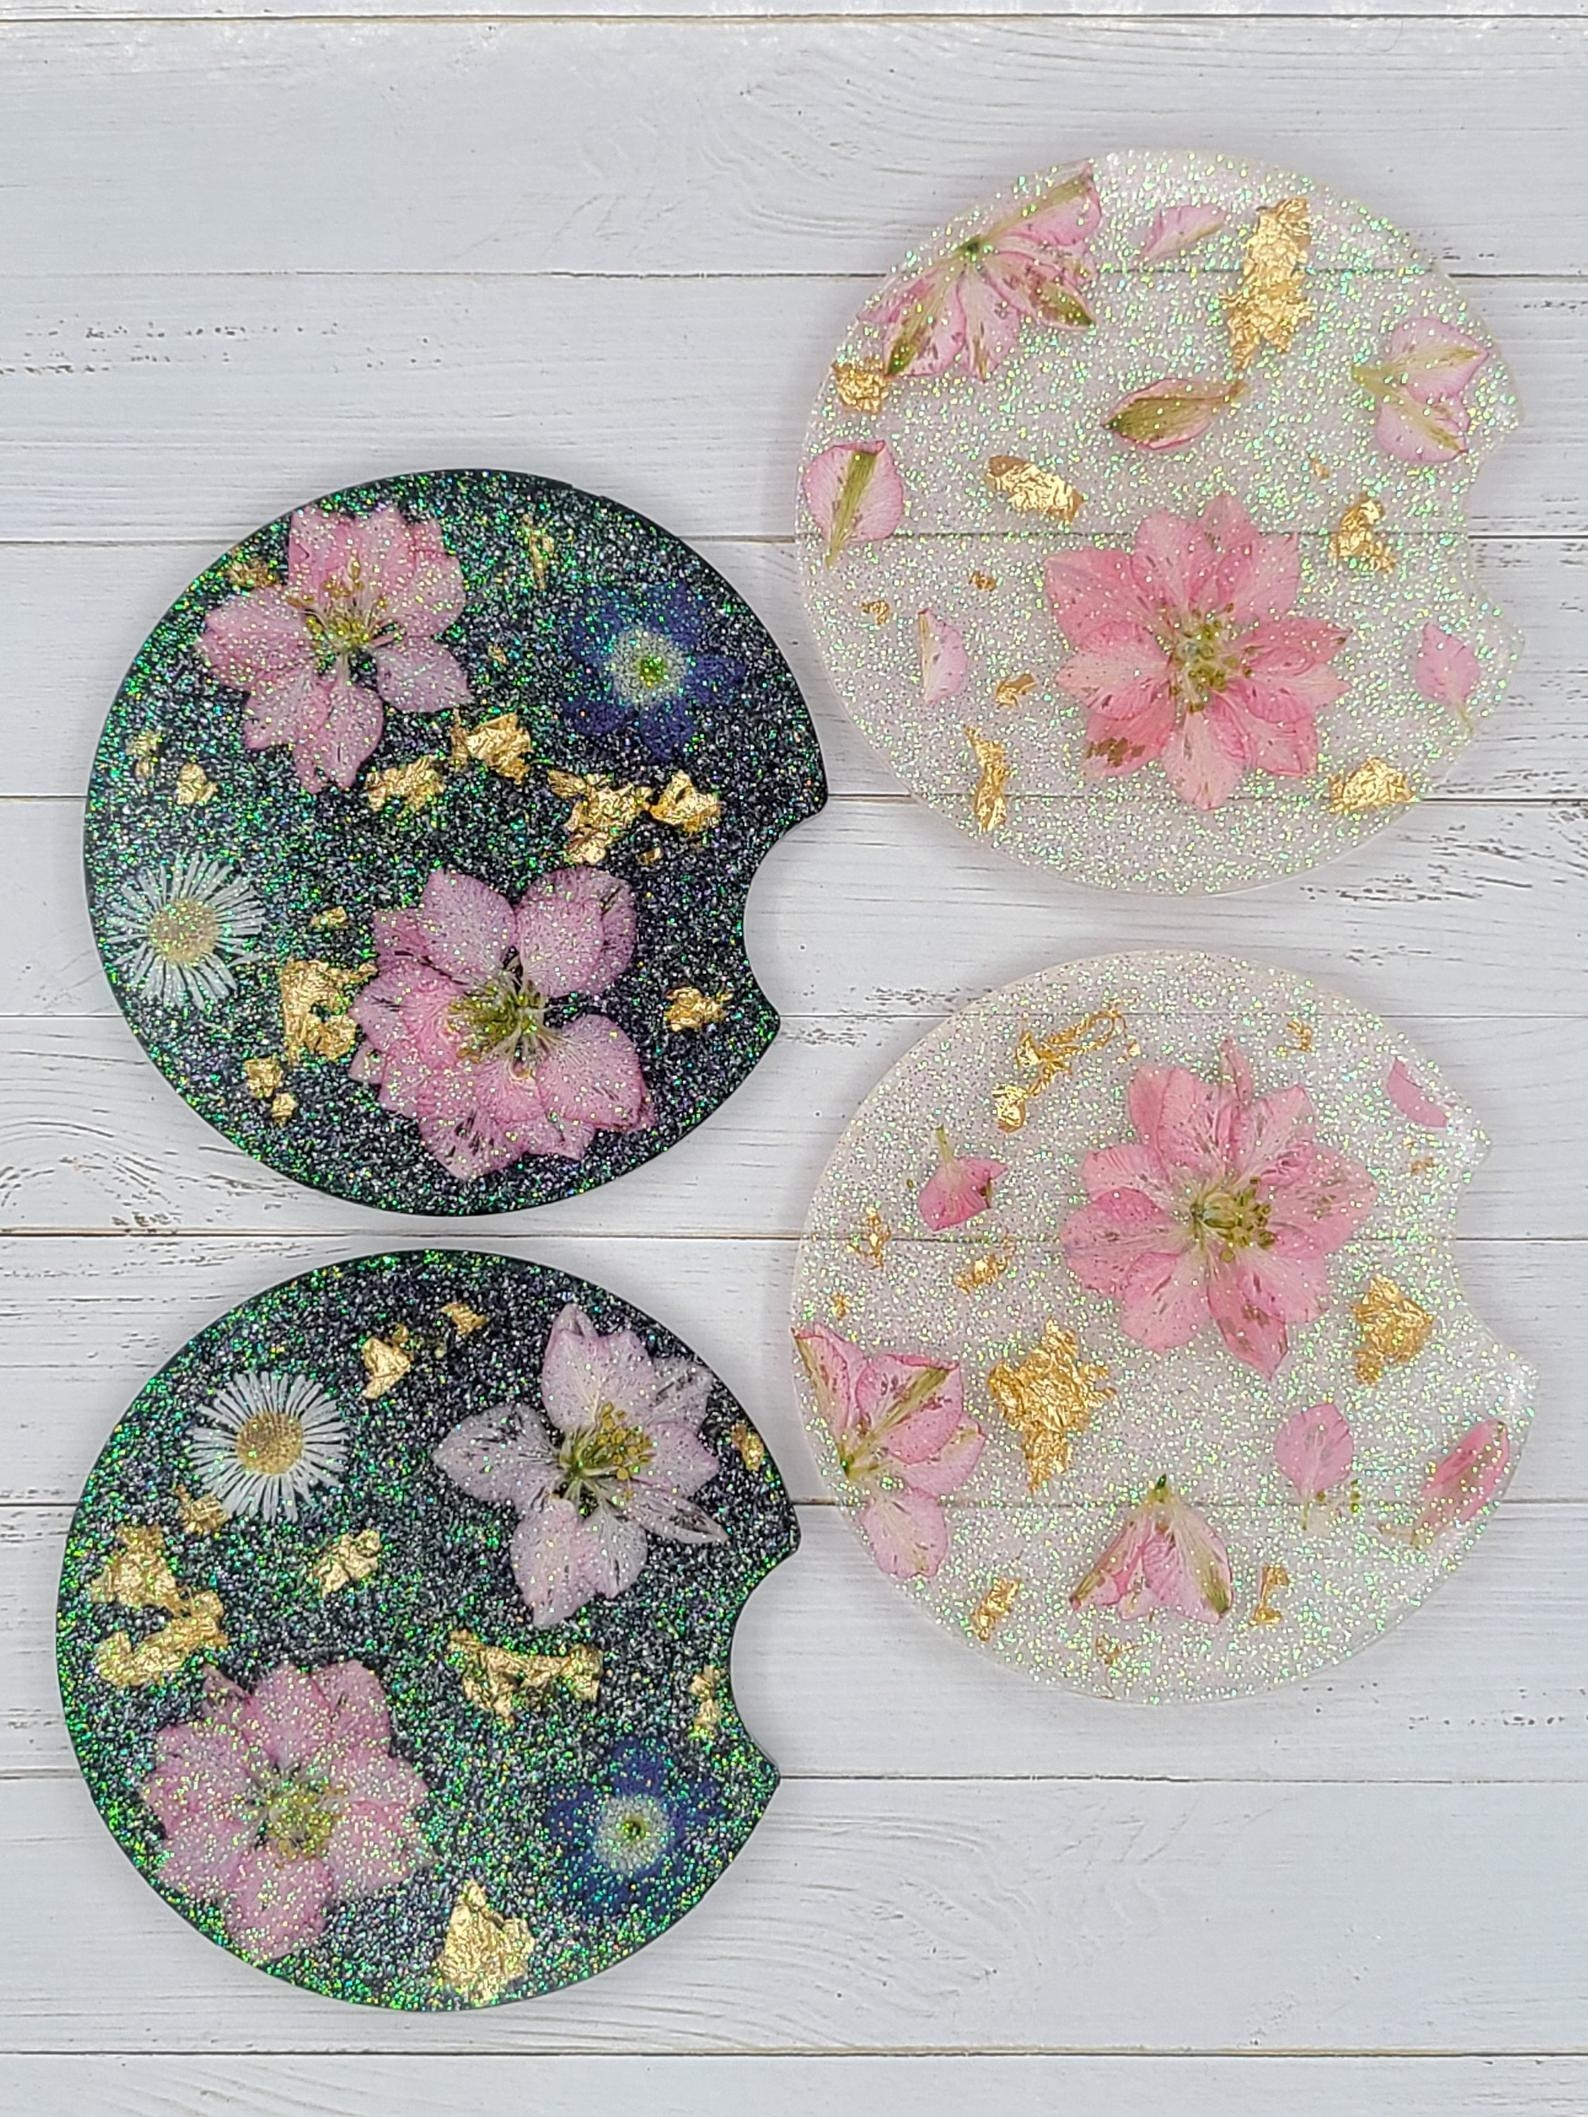 the four coasters with flowers and sparkles